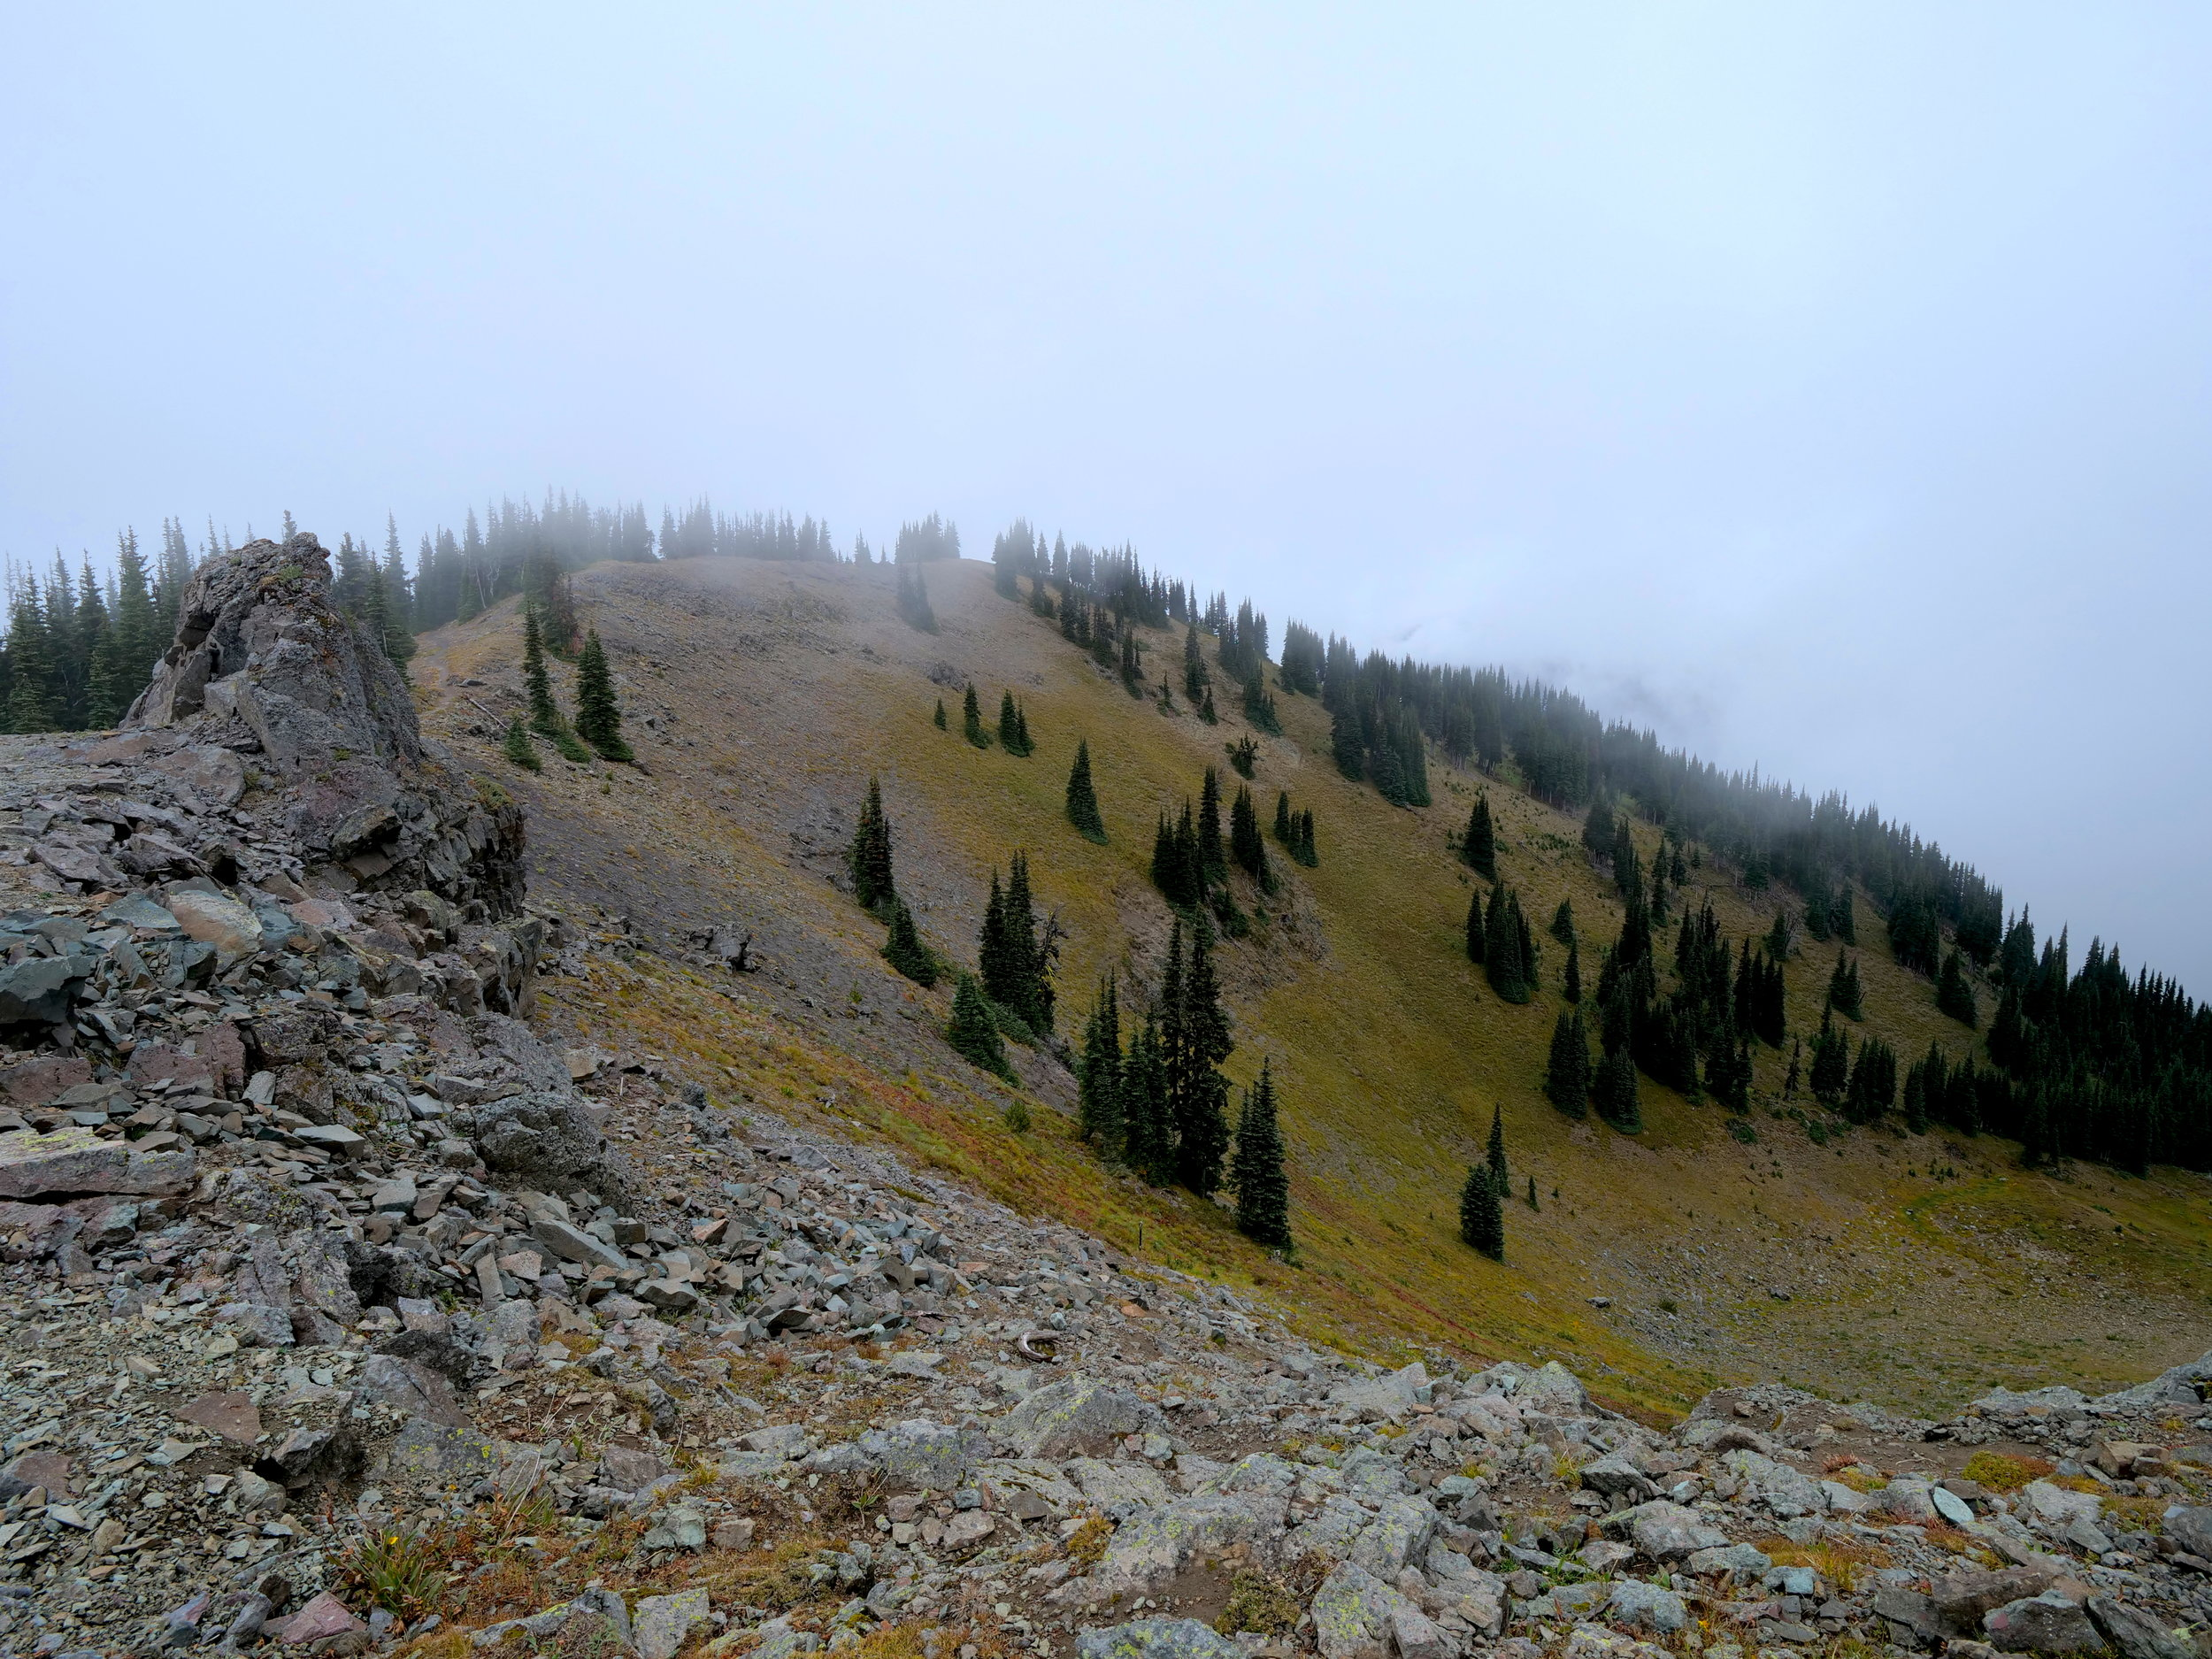 Crystal Mountain Trail before dropping to Sand Flats